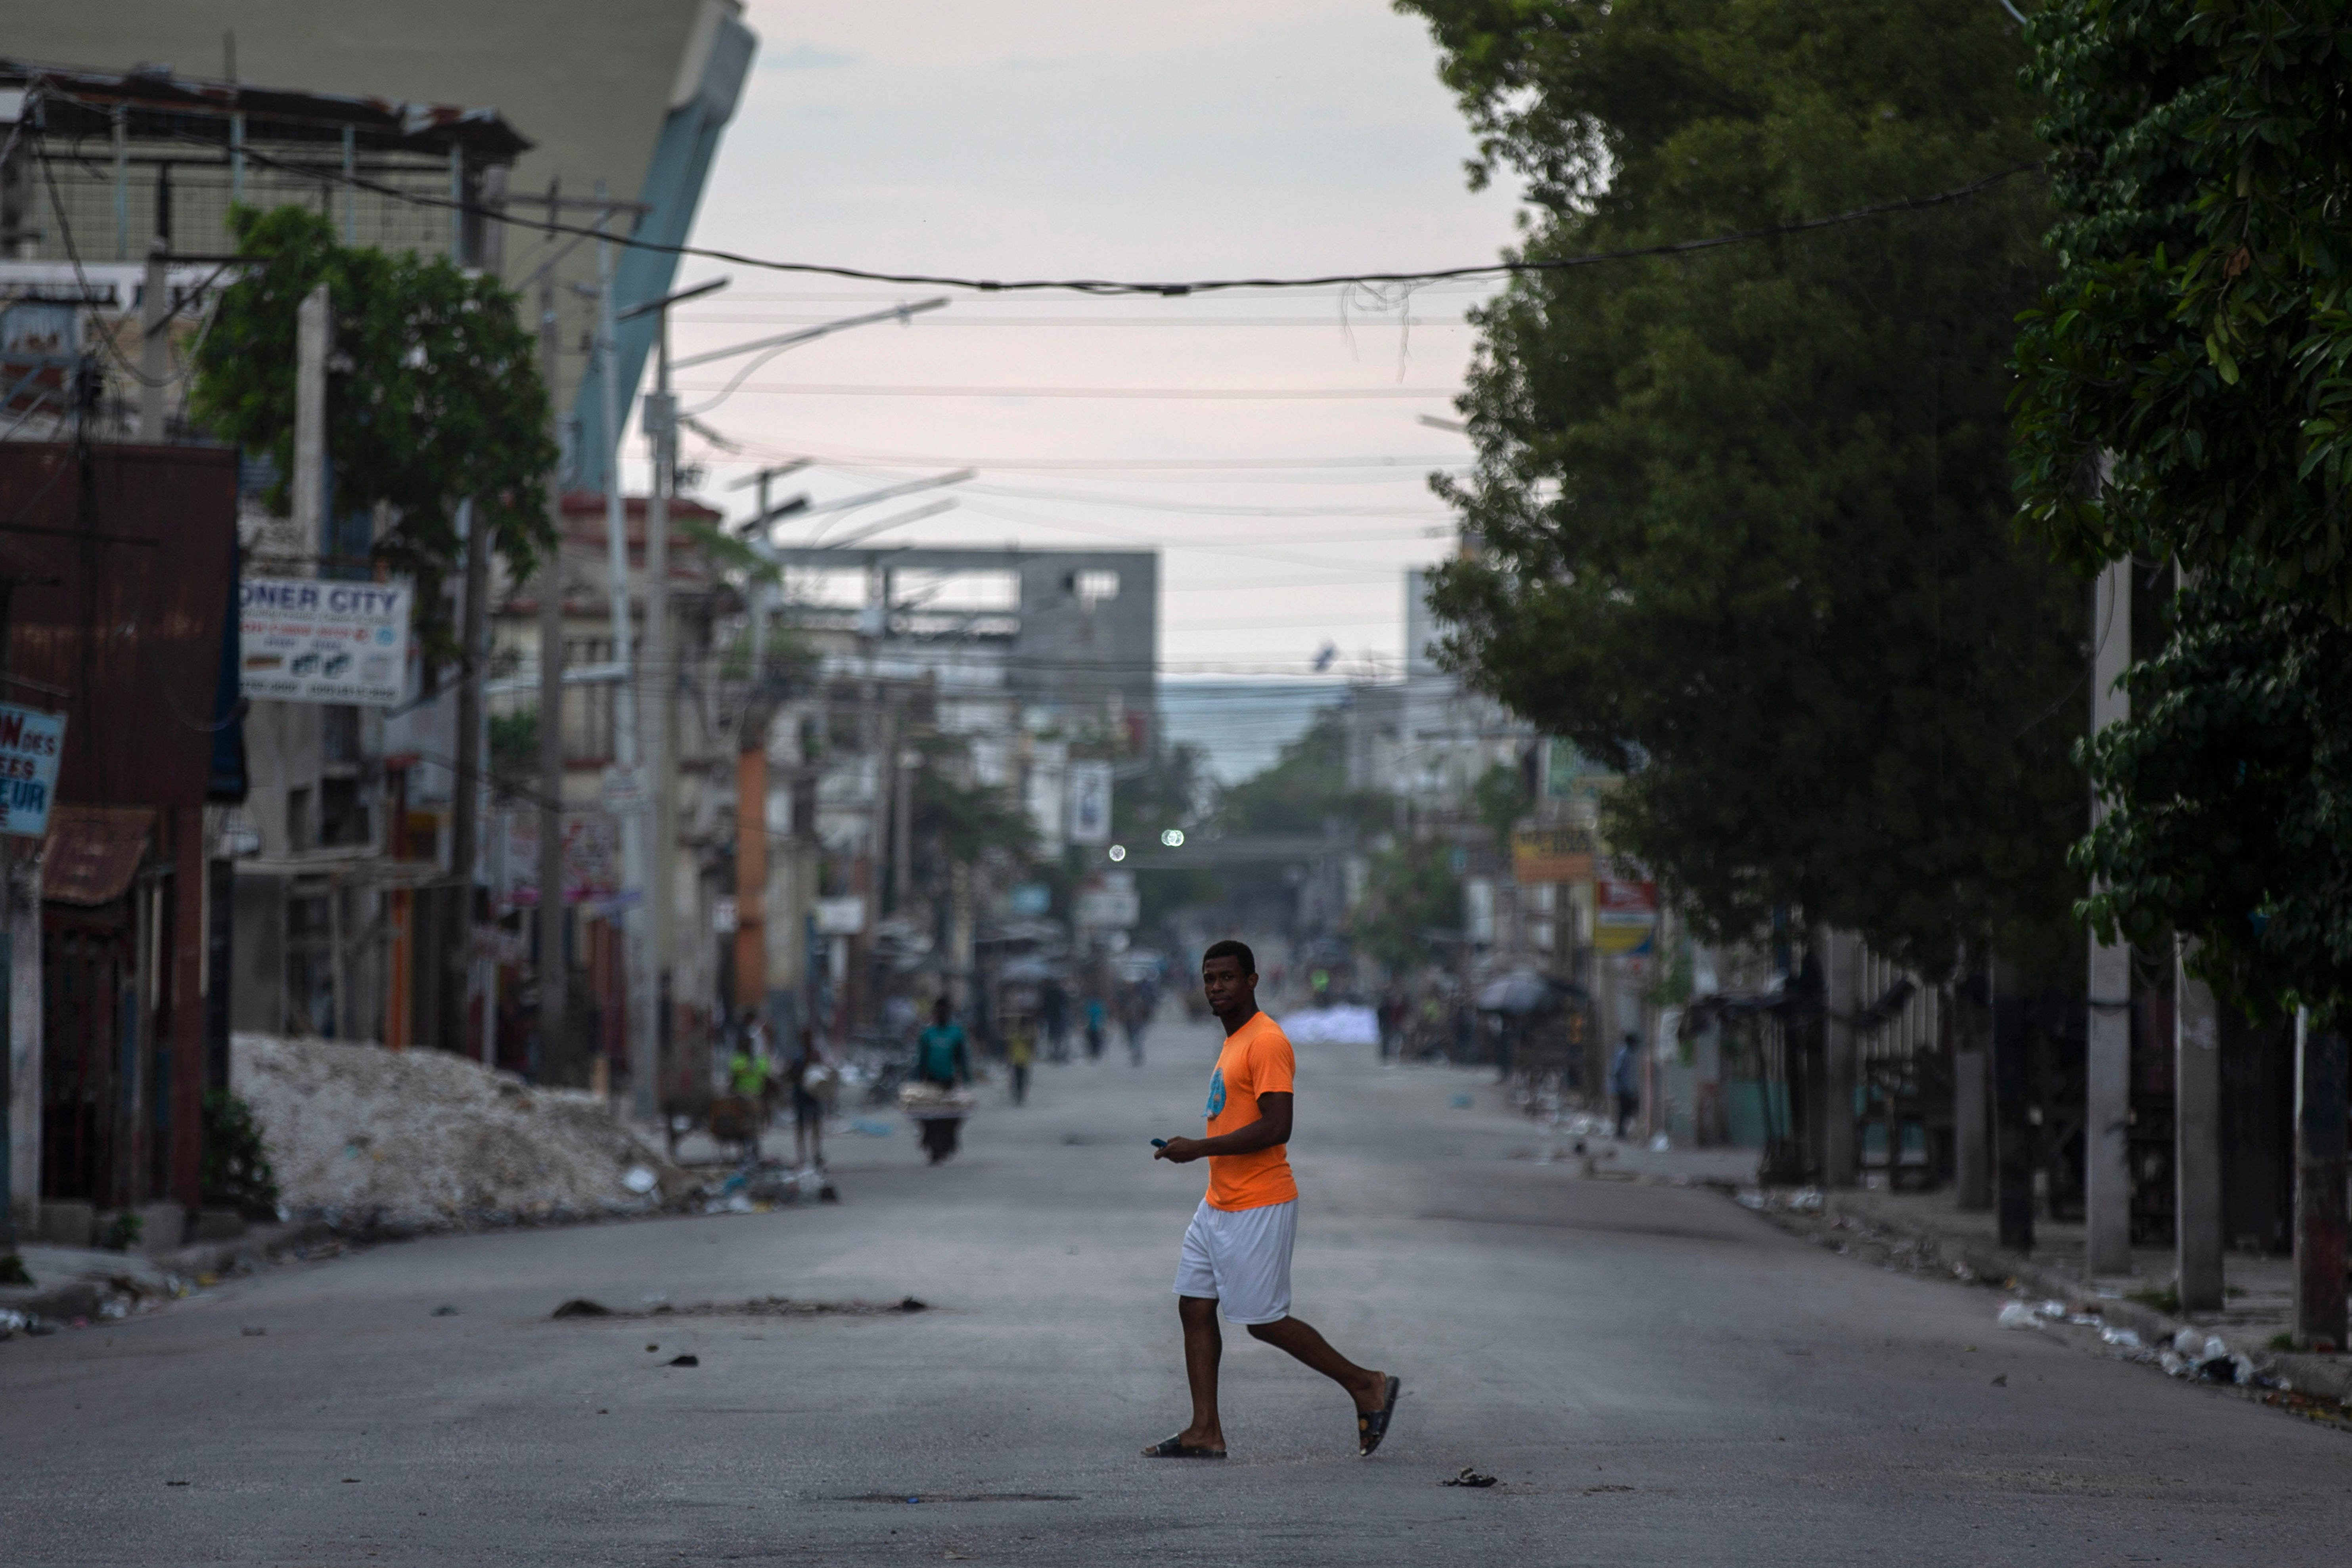 Mitch Albom: Why people keep going to help Haiti, despite the obvious danger